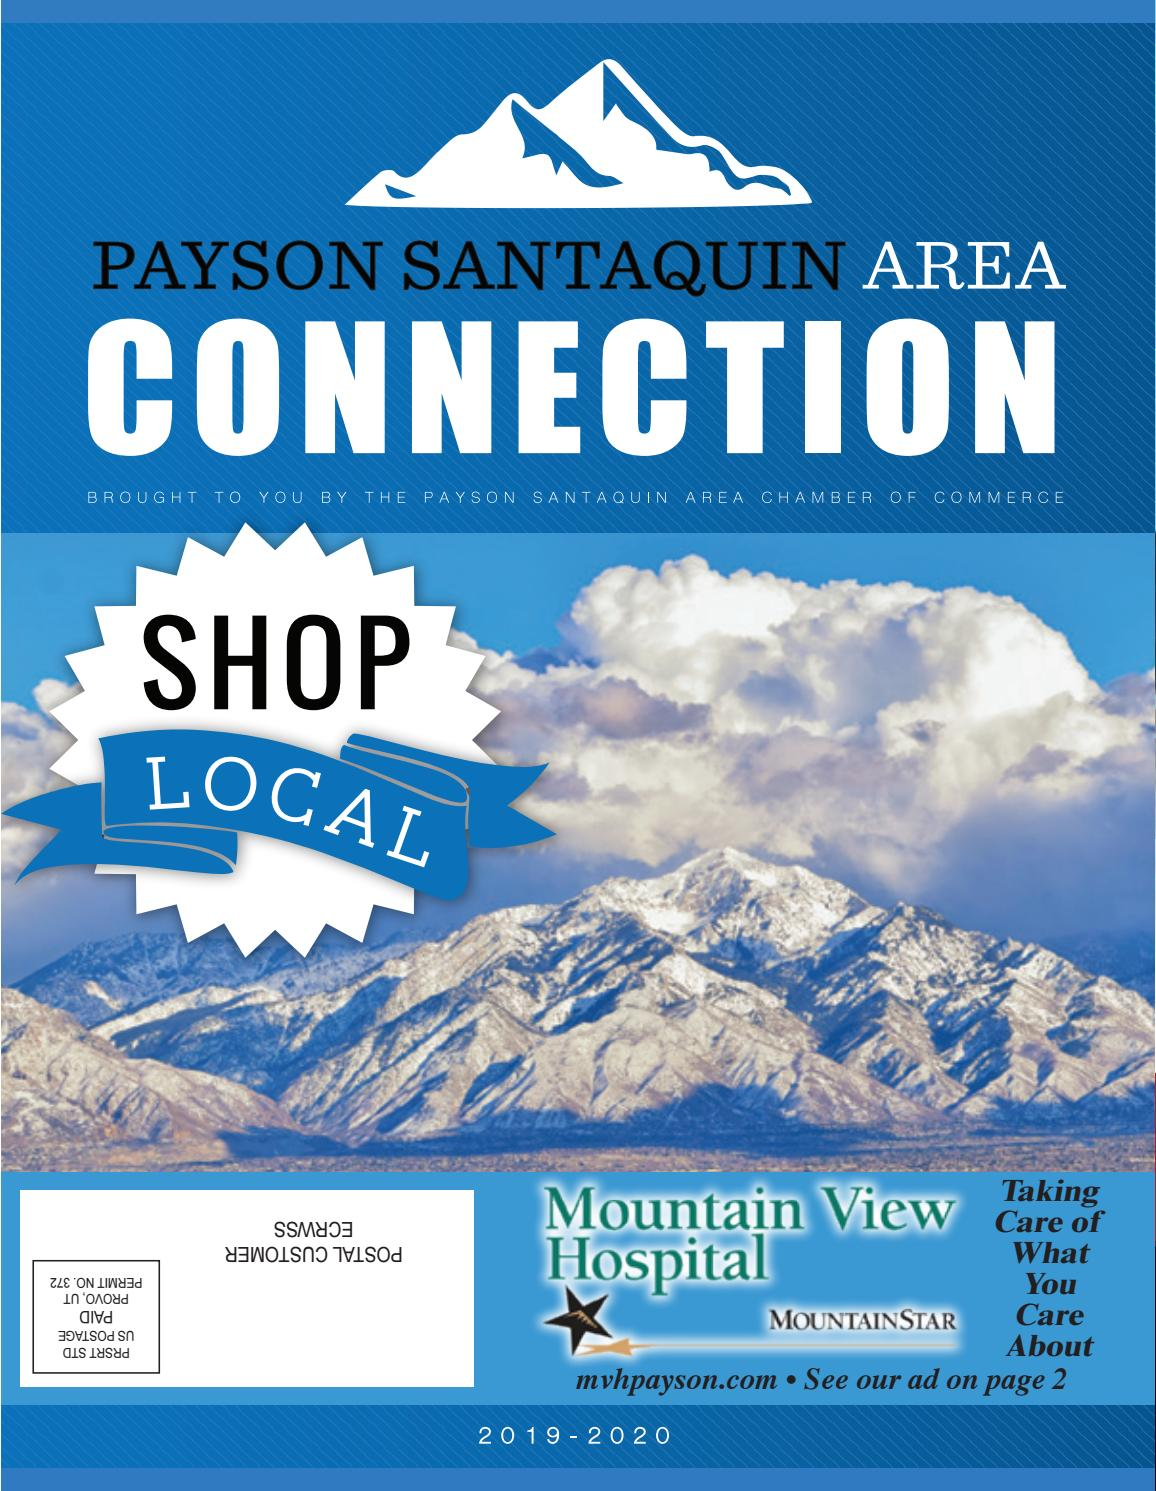 2019 Payson Santaquin Area Chamber of Commerce Connection by